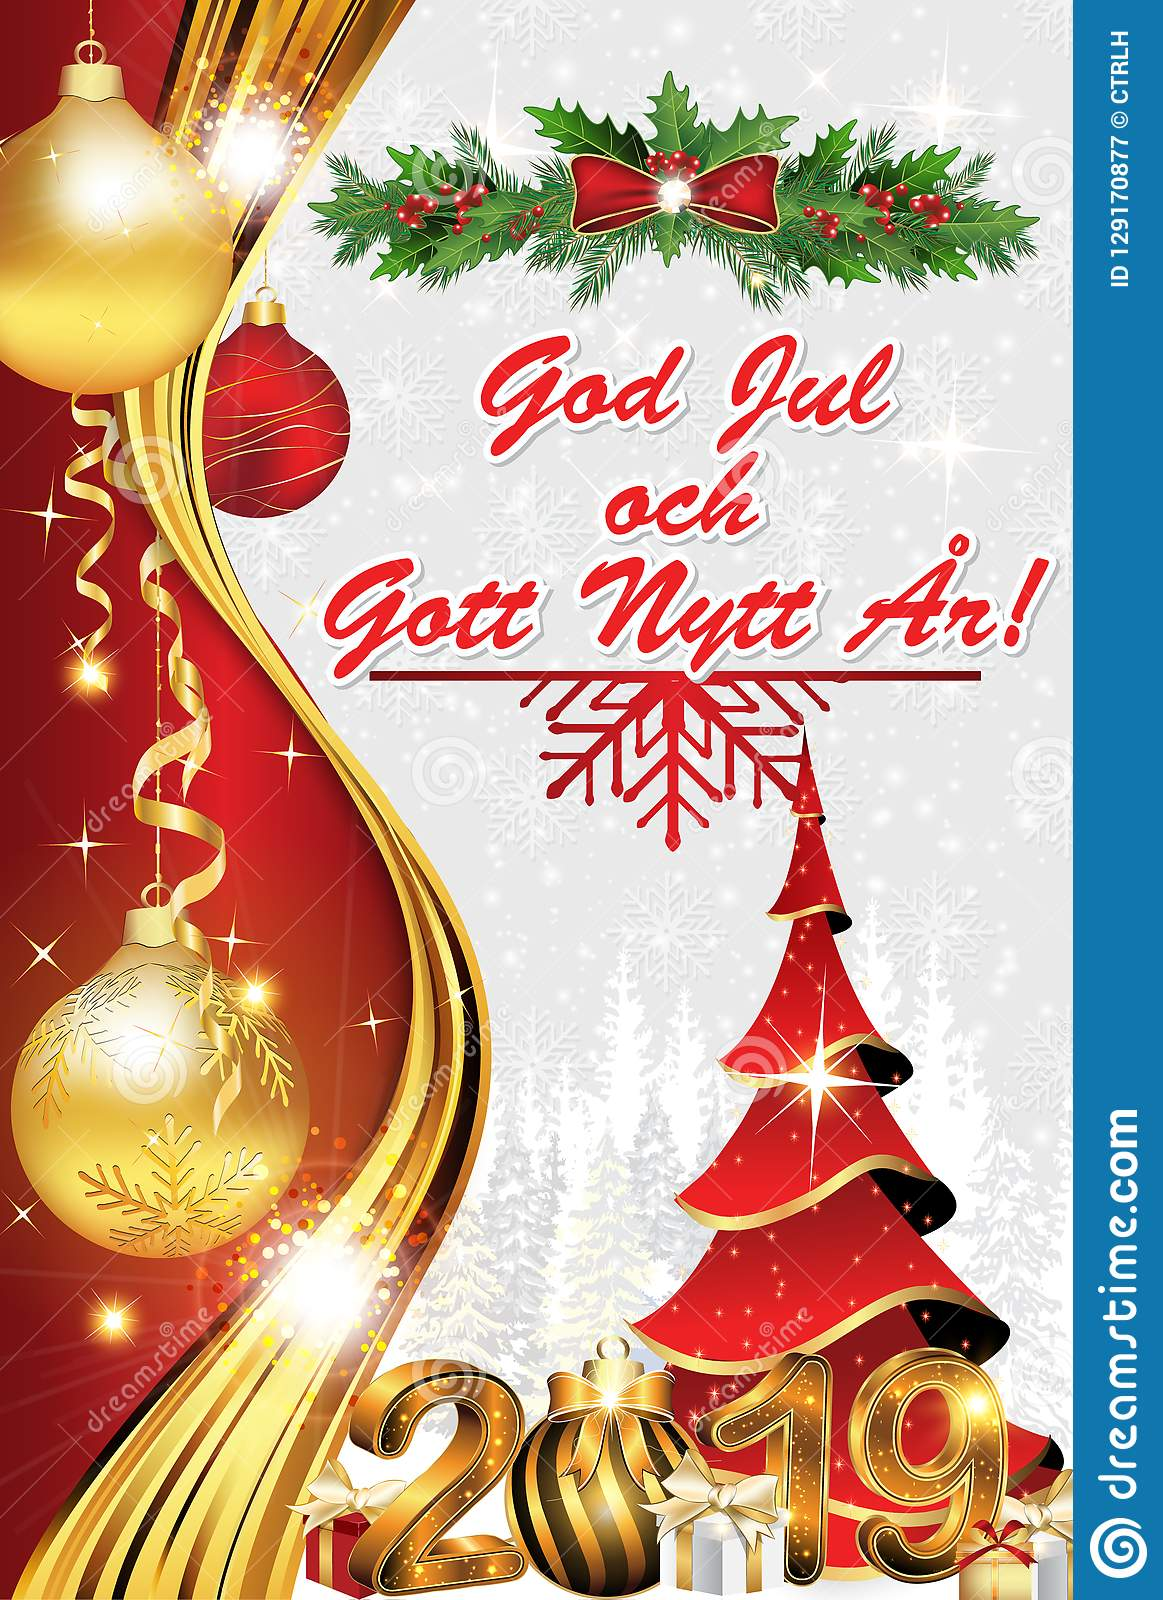 Buon Natale Meaning In English.Merry Christmas And Happy New Year Greeting Card In Swedish Stock